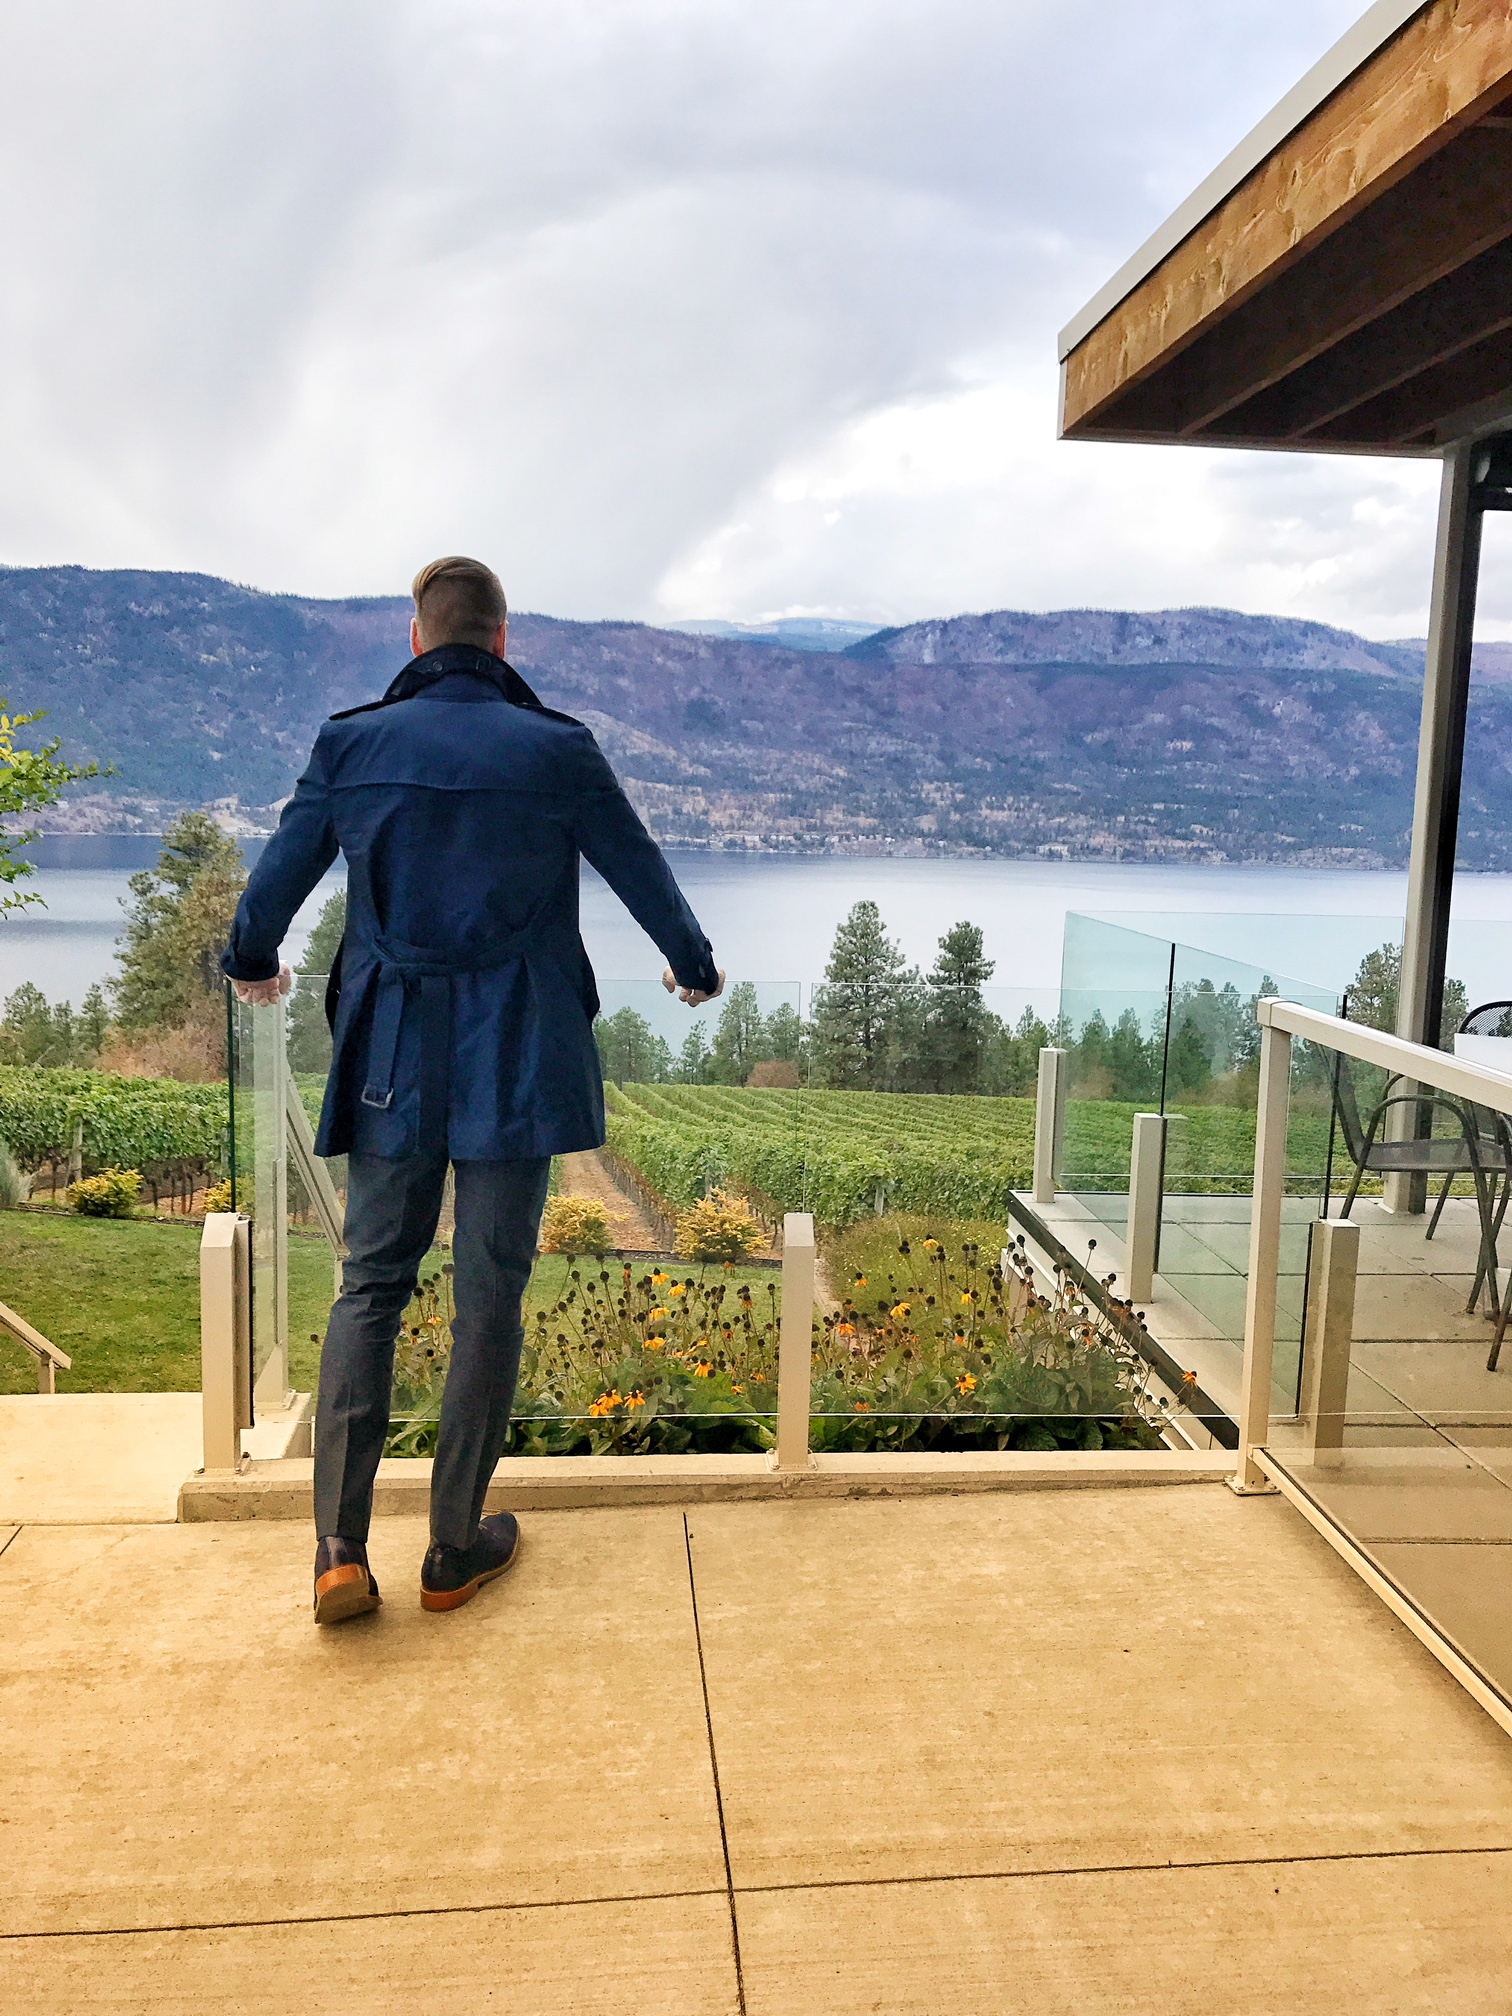 Enjoying the beauty of BC's Lake Country wine region.